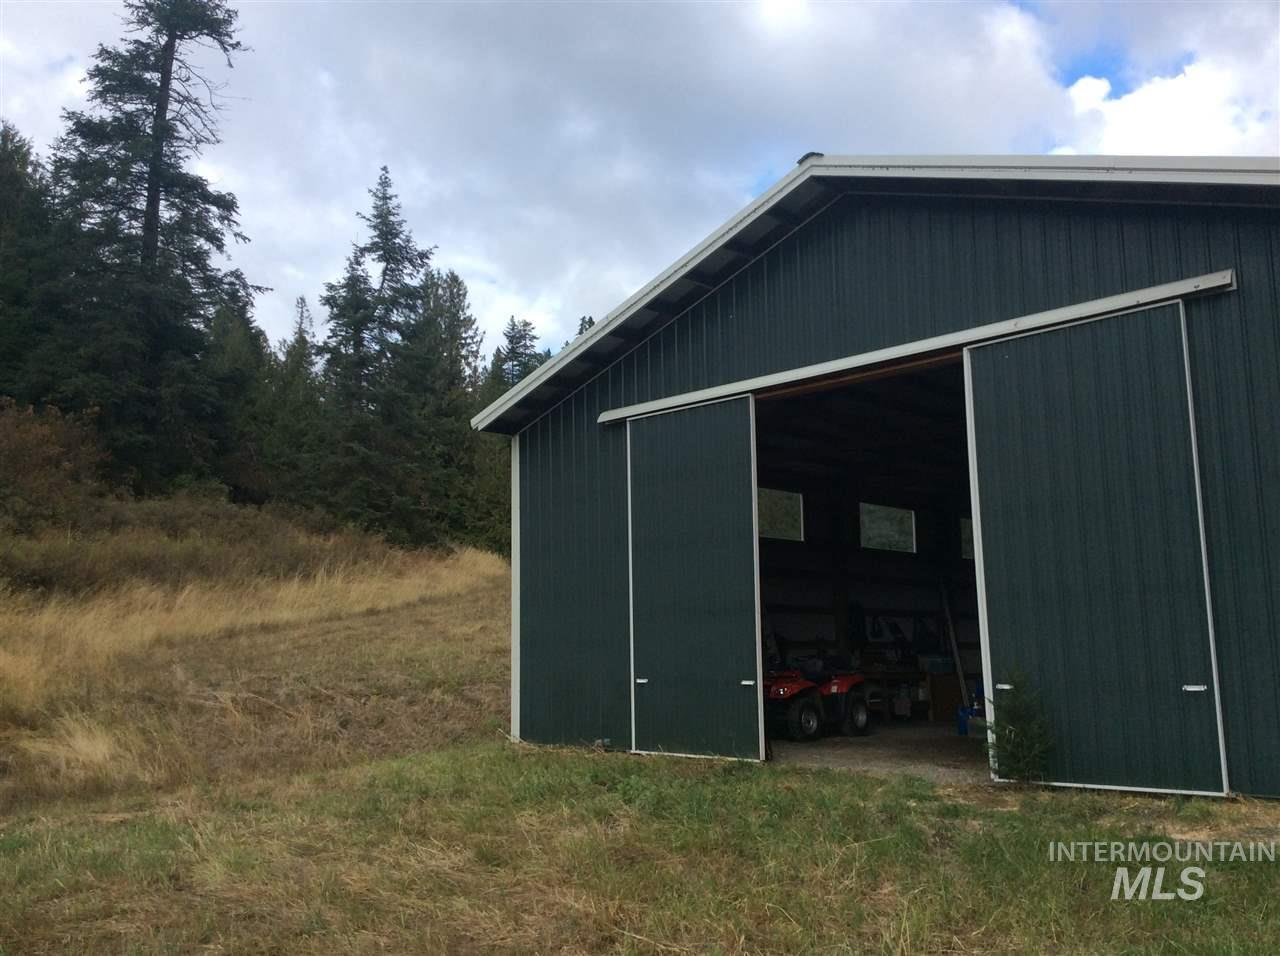 Recreational Property for Sale at NNA Carscallen Road NNA Carscallen Road Potlatch, Idaho 83855